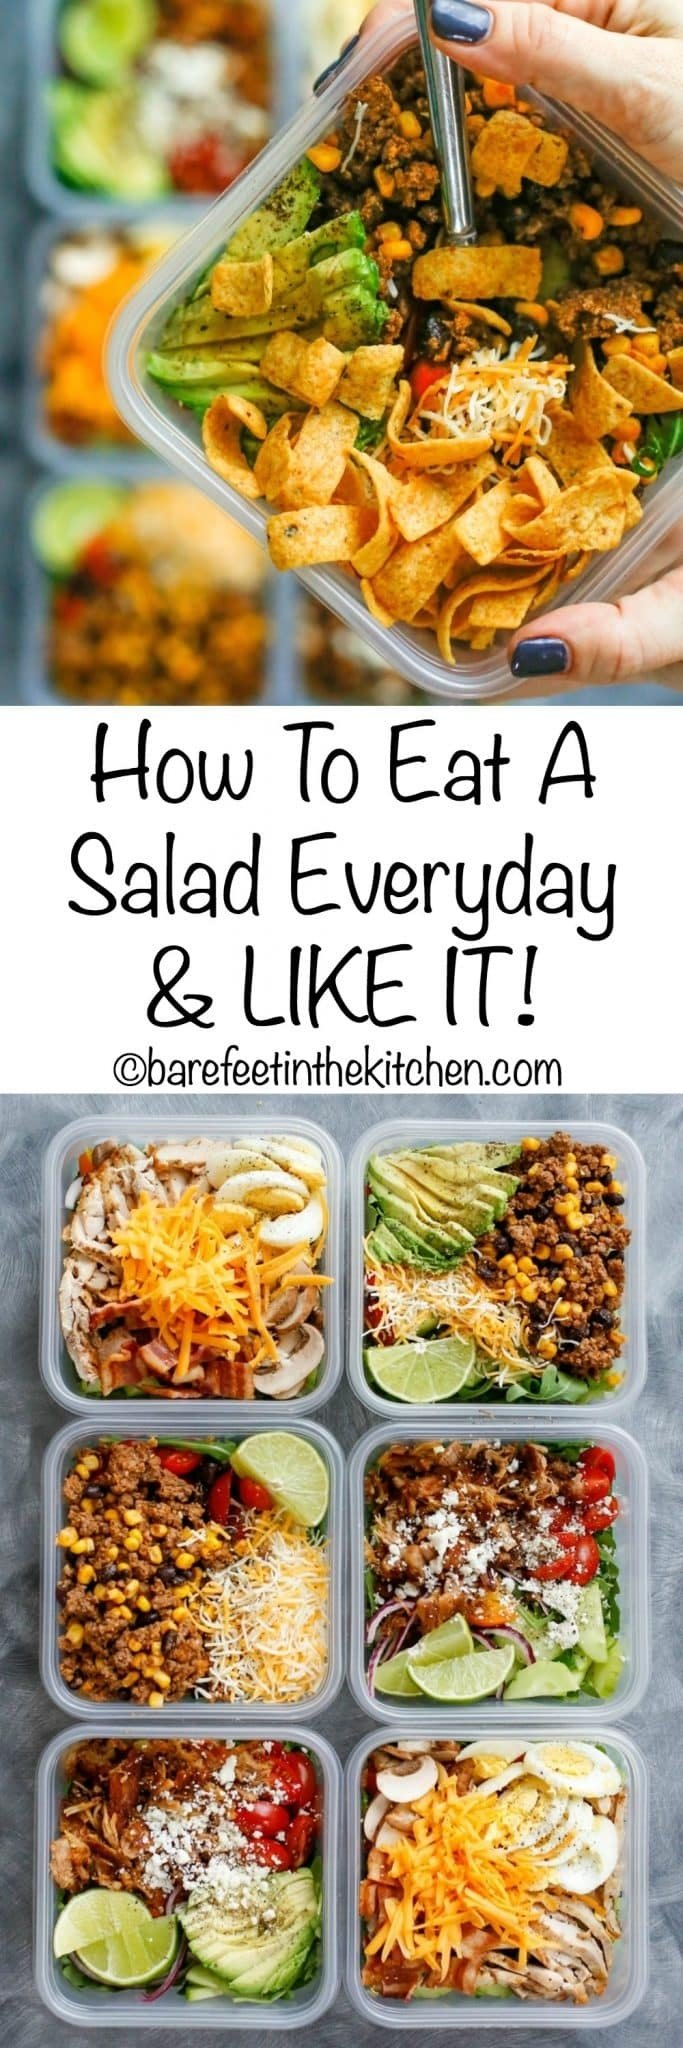 10 Stylish Simple Lunch Ideas For Work how to eat salad every day and like it 2021